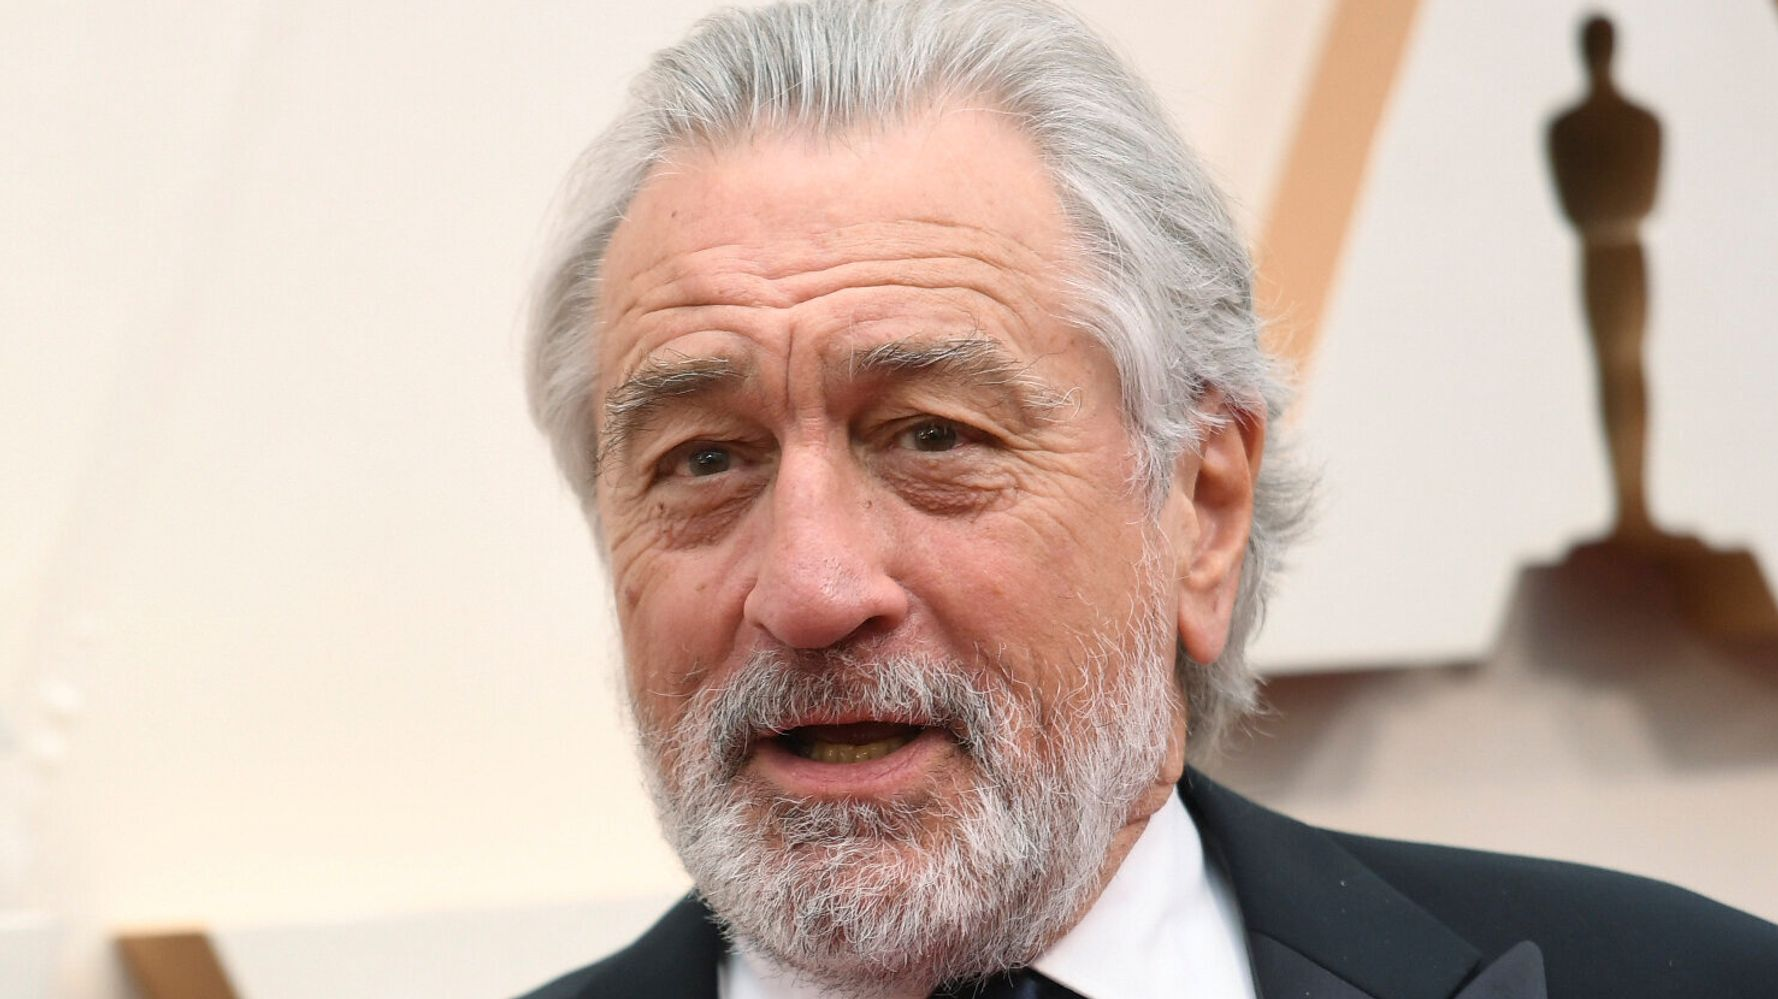 Robert De Niro Issues Warning About The Person Donald Trump May Have Inspired